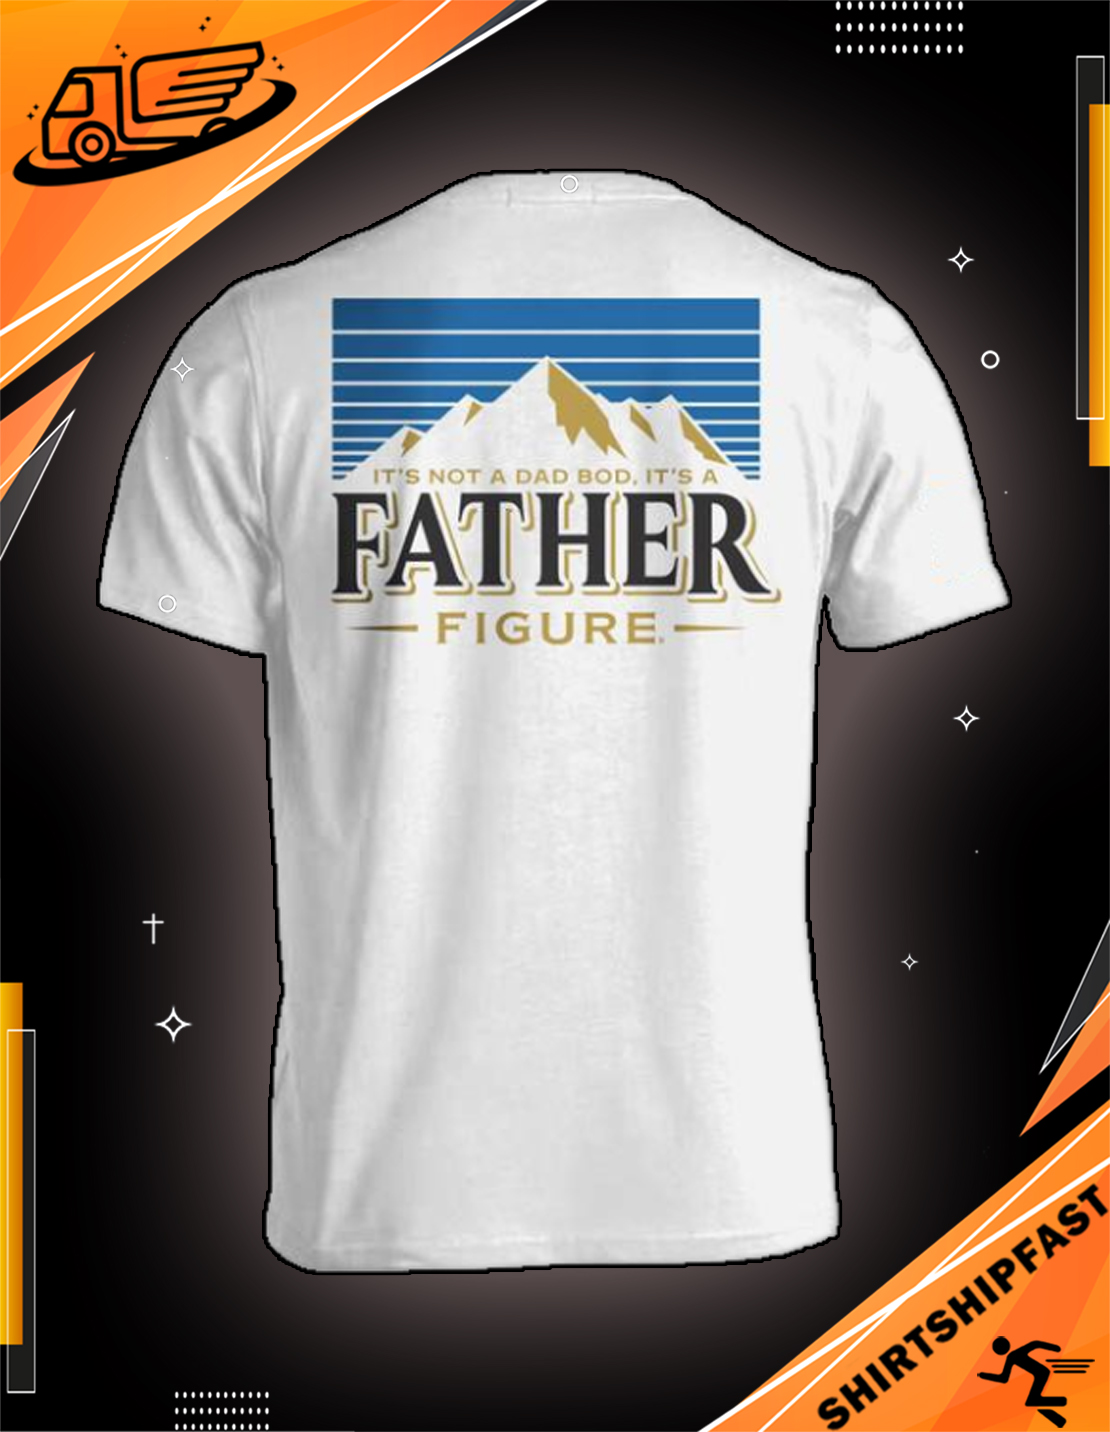 Busch Light It's not a dad bod It's a father figure shirt - Picture 2